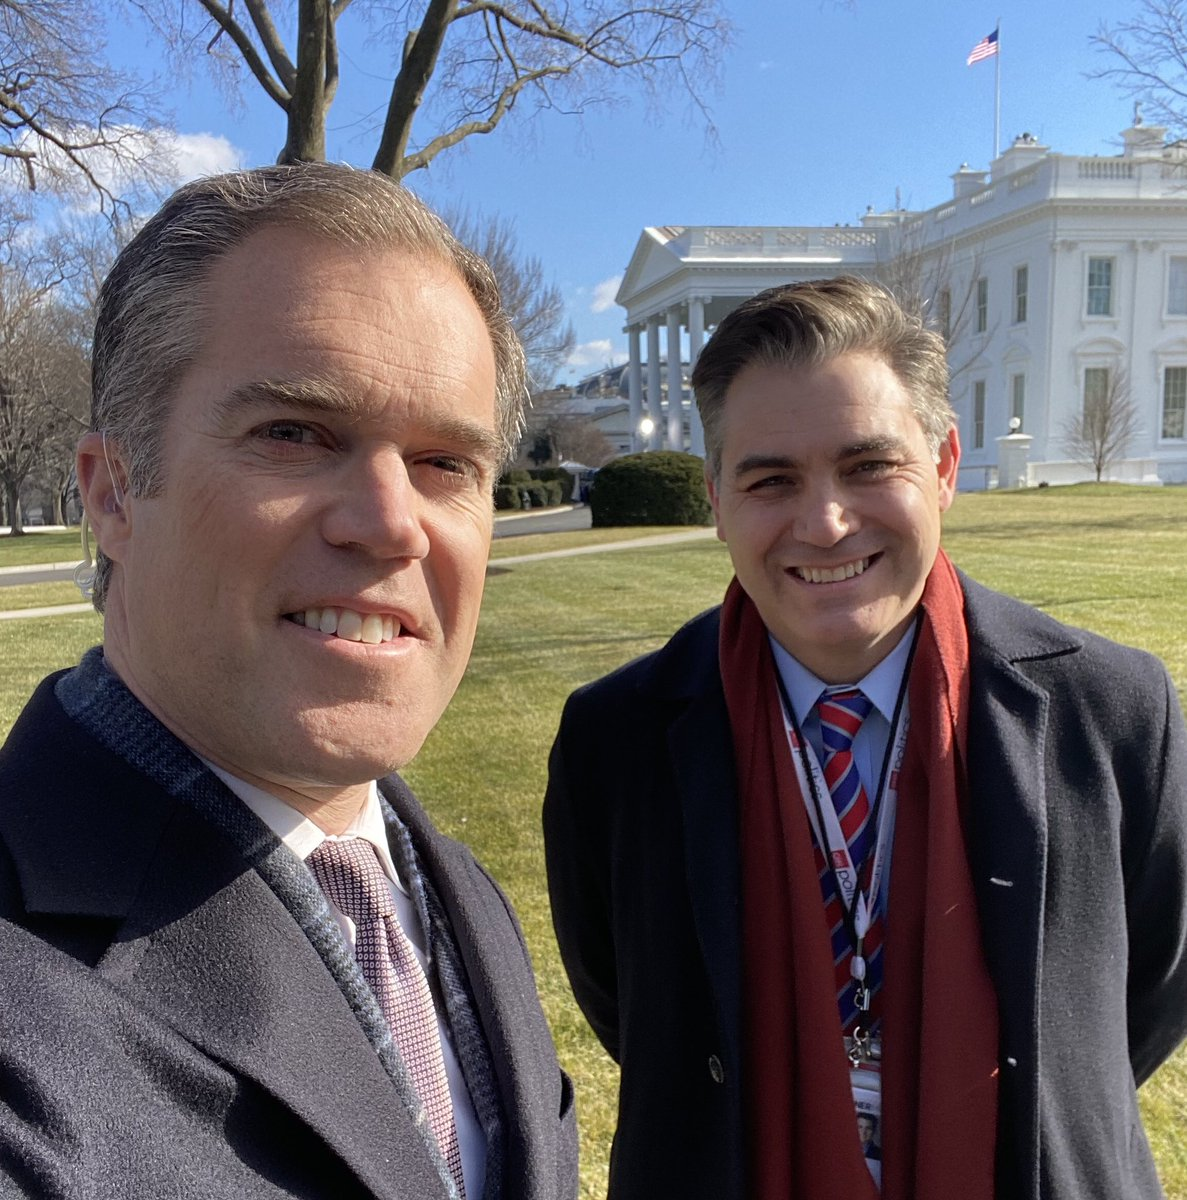 Just a couple of guys covering the WH on the last full day of Trump admin. Think we will finally have time for that drink now @PeterAlexander ?